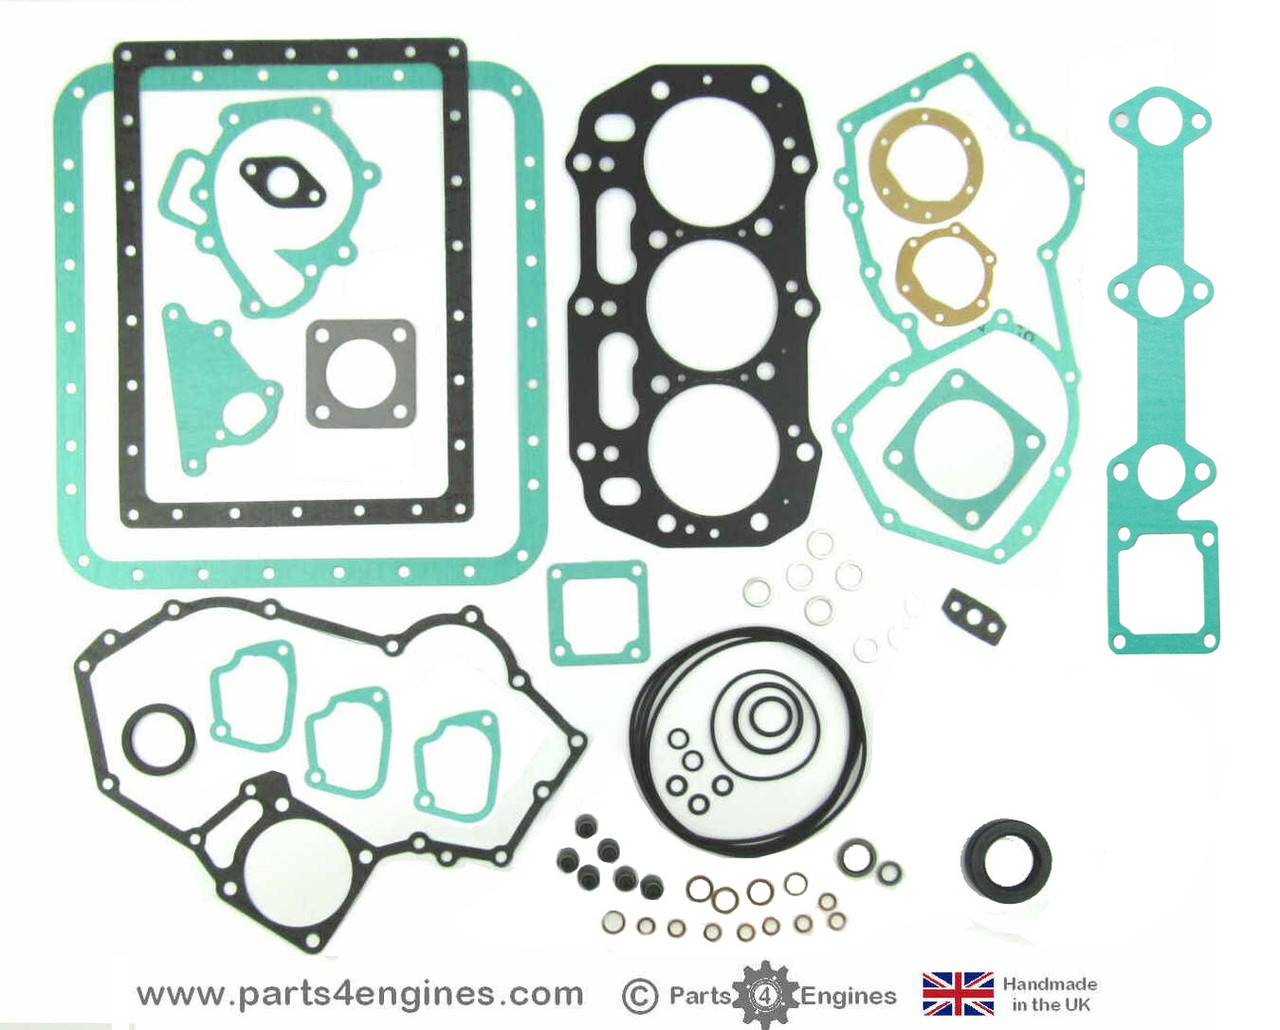 Perkins Perama M35 Complete gasket and seal set - parts4engines.com  (no rear oil seal)